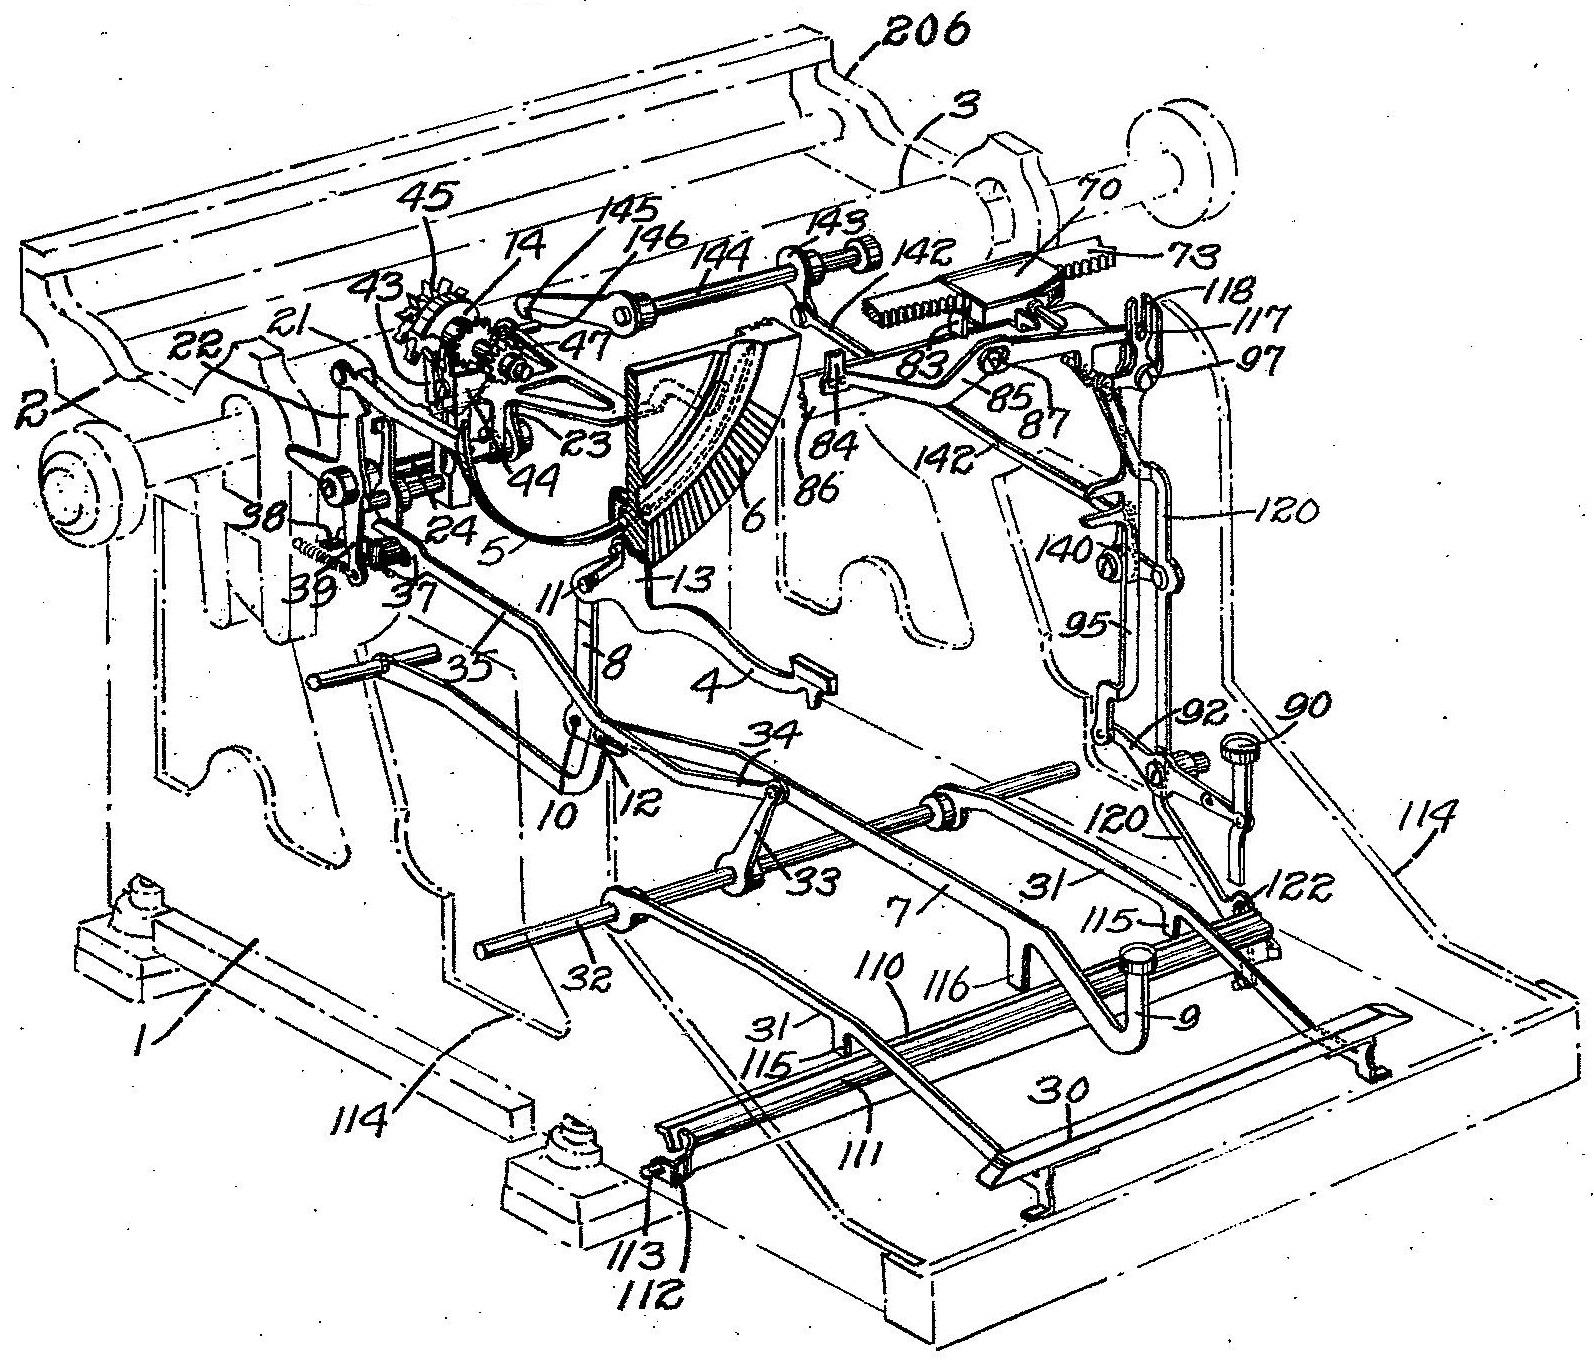 Bathroom fan switch wiring - Fan Isolator Switch Wiring Diagram Oz Typewriter On This Day In Typewriter History The Burroughs Isolator